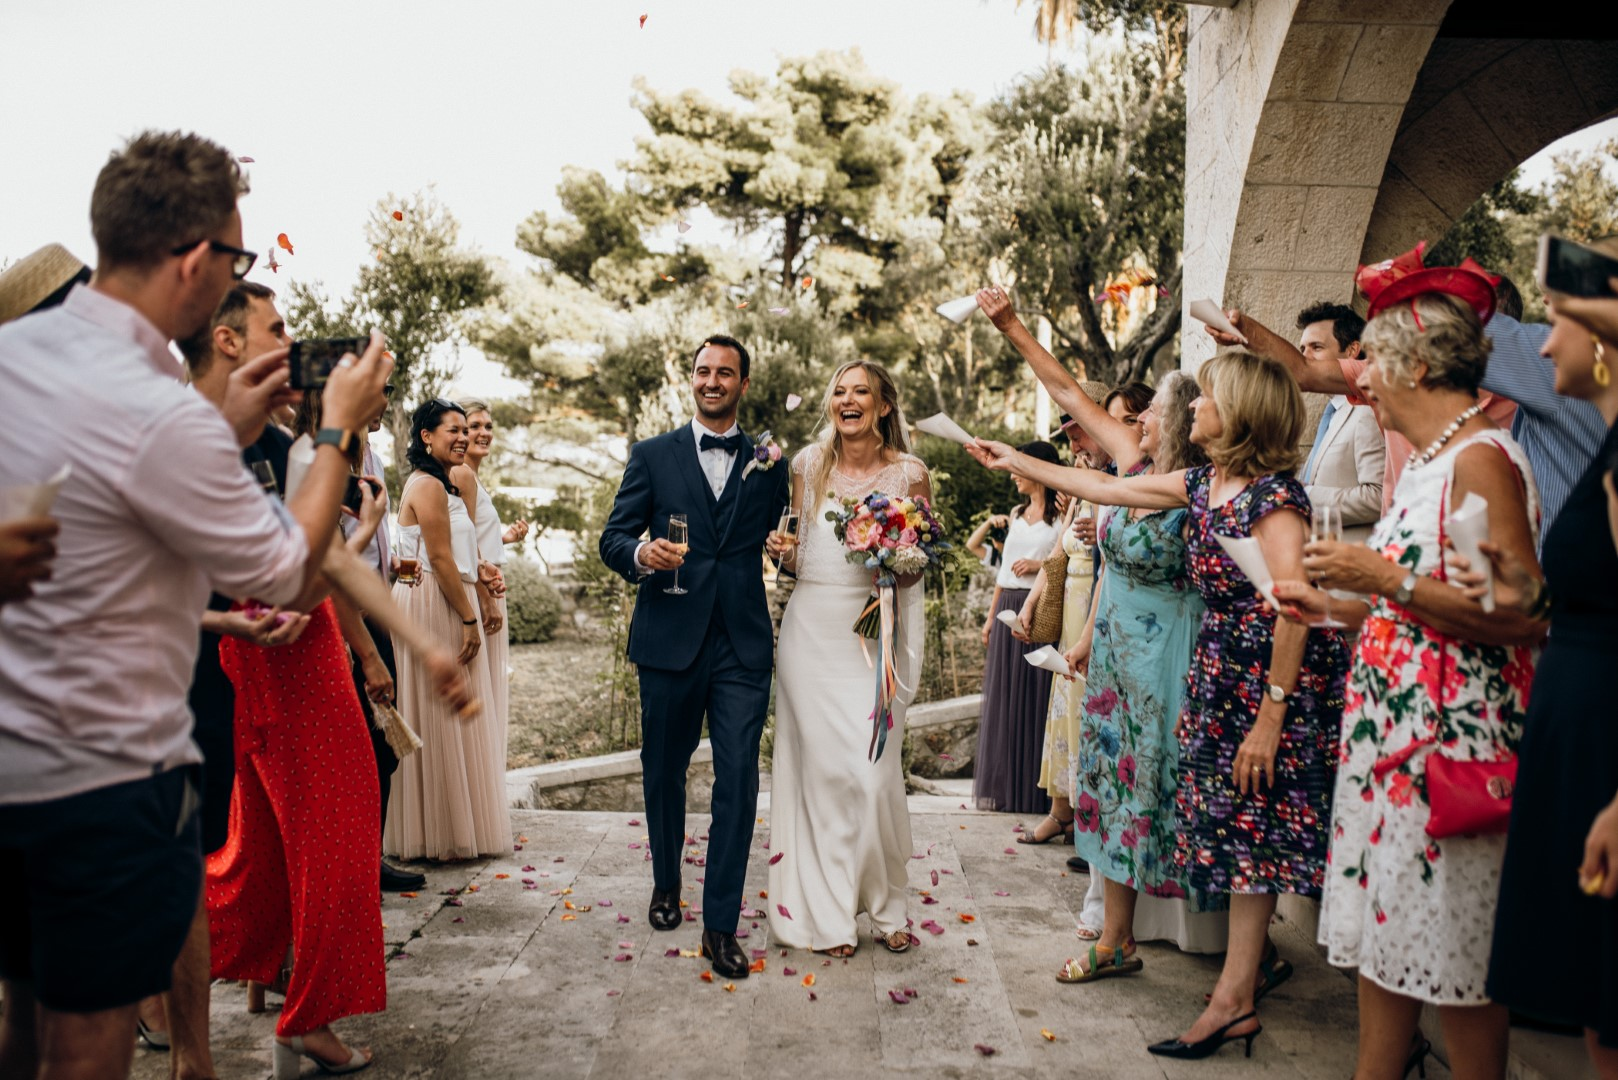 This photo shows a couple arriving to their wedding reception on Kolocep island. The wedding venue is Villa Ruza, a renowned restaurant in Dubrovnik area. Everyone around them is cheering and throwing confetti and flowers. The colors are beautiful and everyone is enjoying. The couple has two champagne glasses.